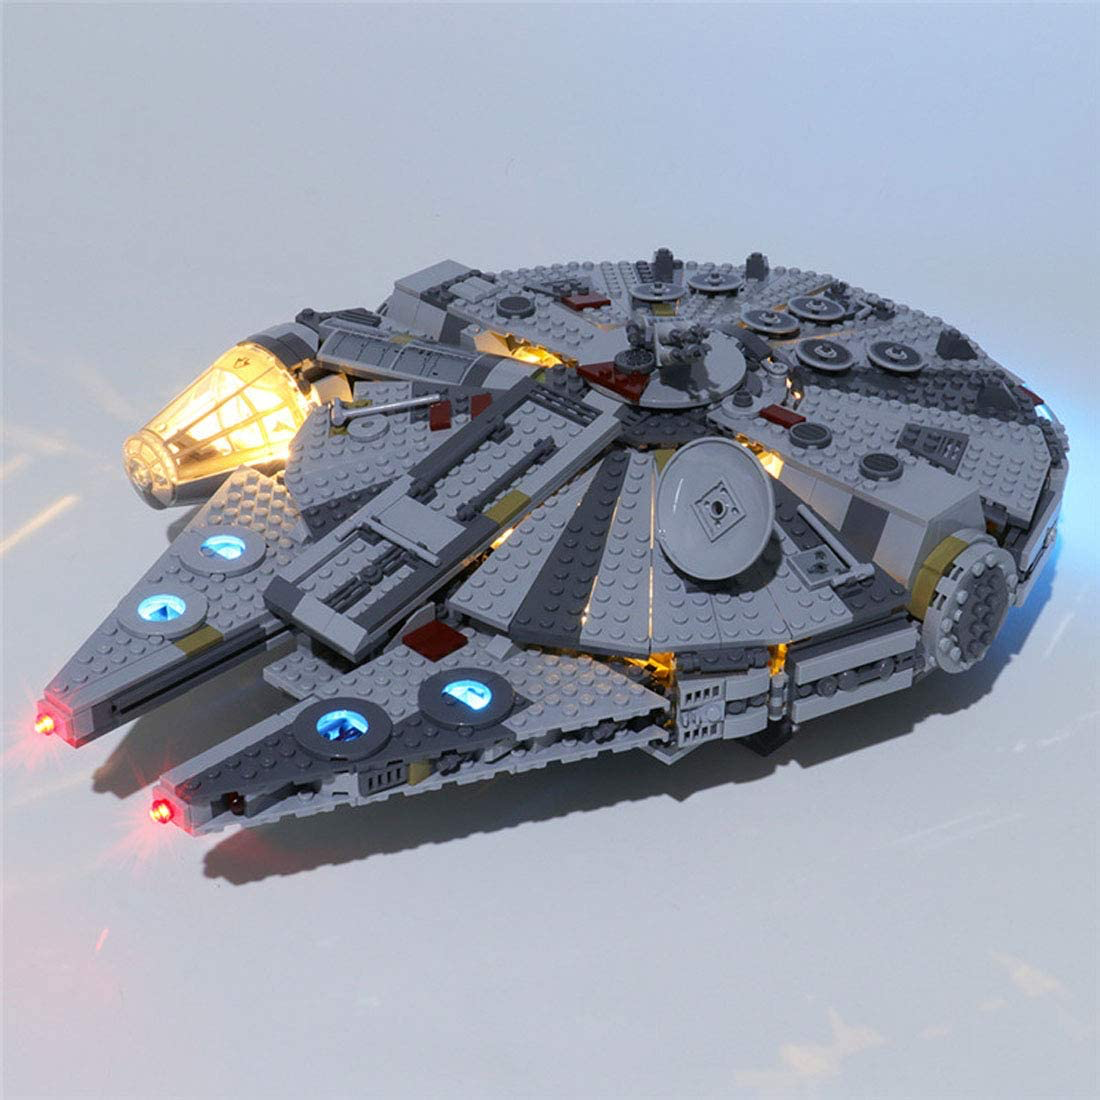 TROS Millennium Falcon LED Light Lego set 2